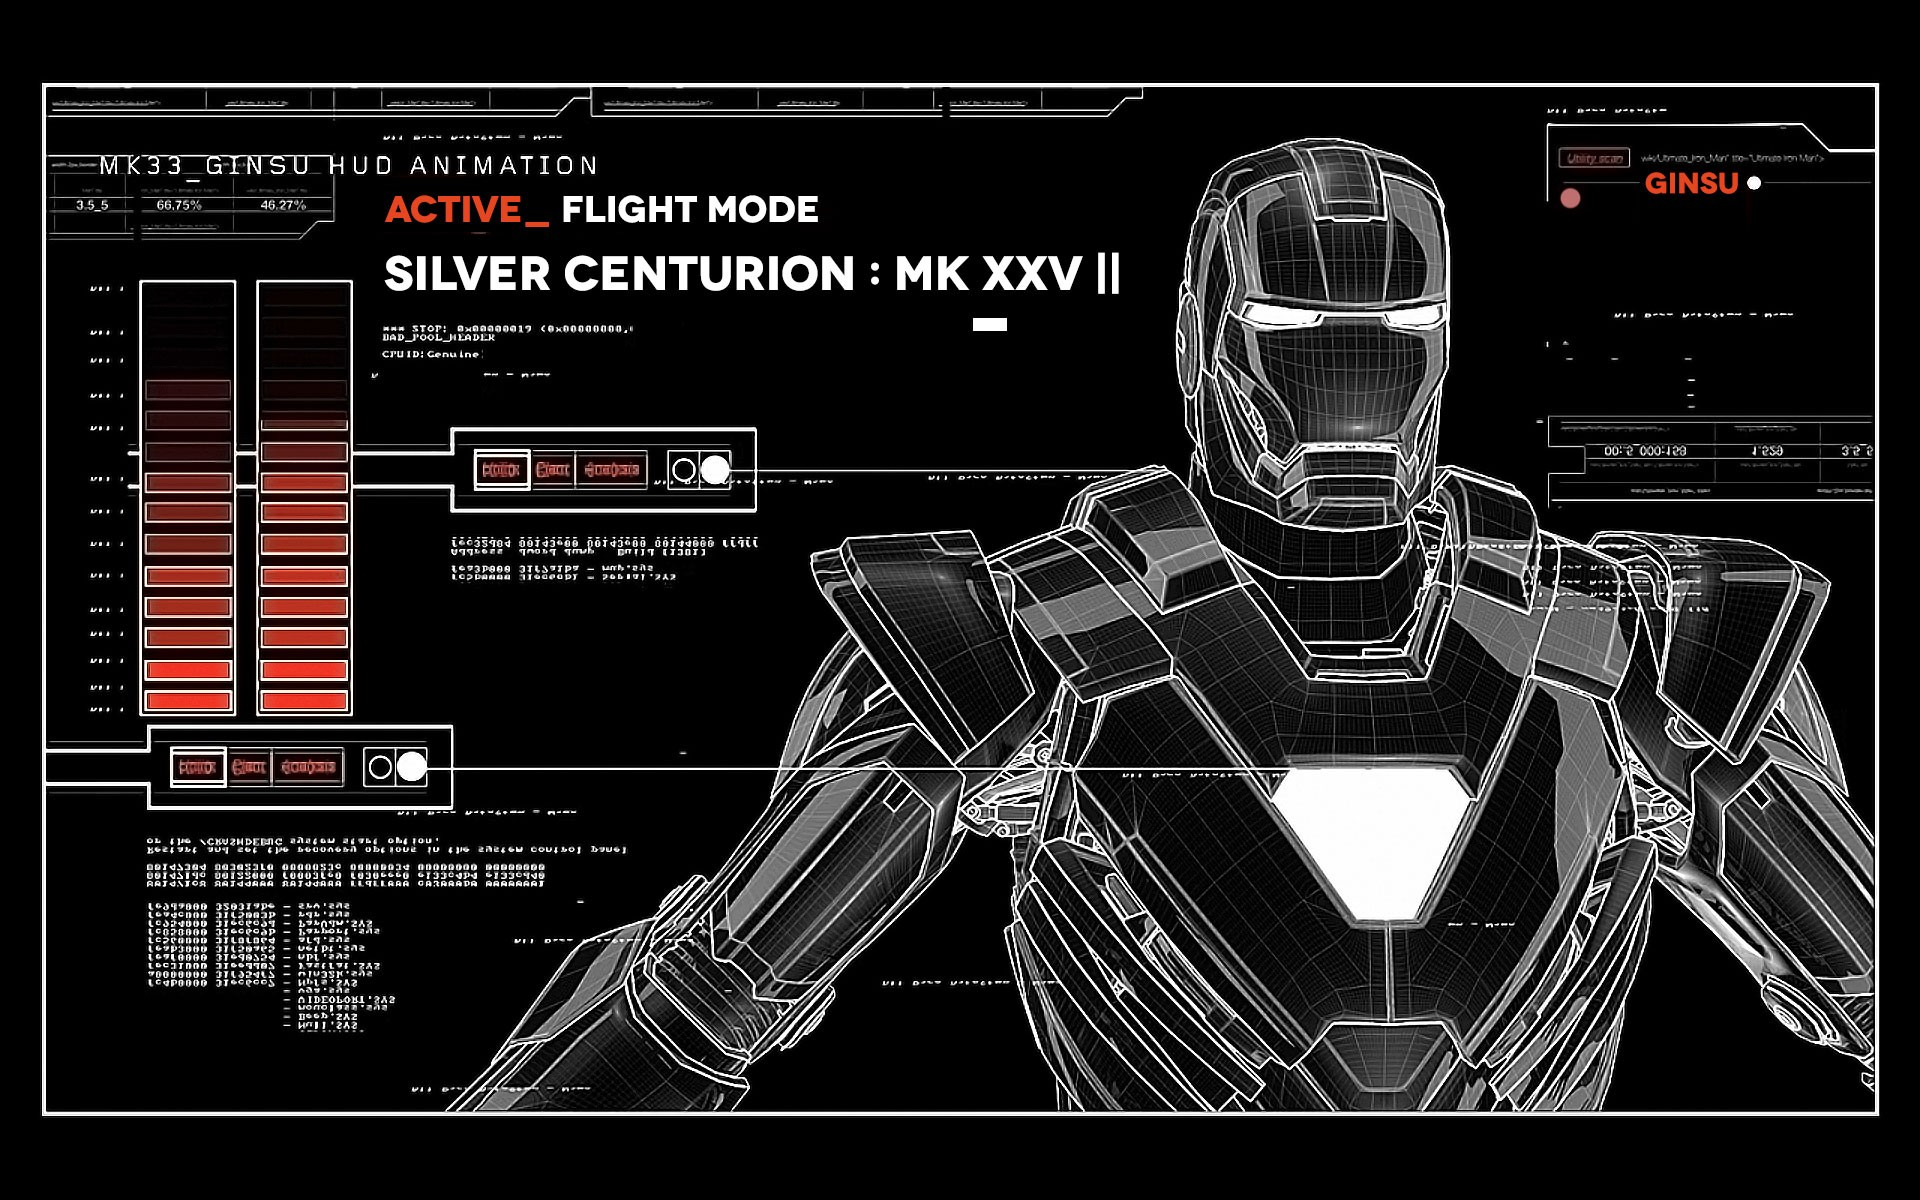 I Phone X Inside 3d Wallpaper Iron Man 3 Full Hd Fond D 233 Cran And Arri 232 Re Plan